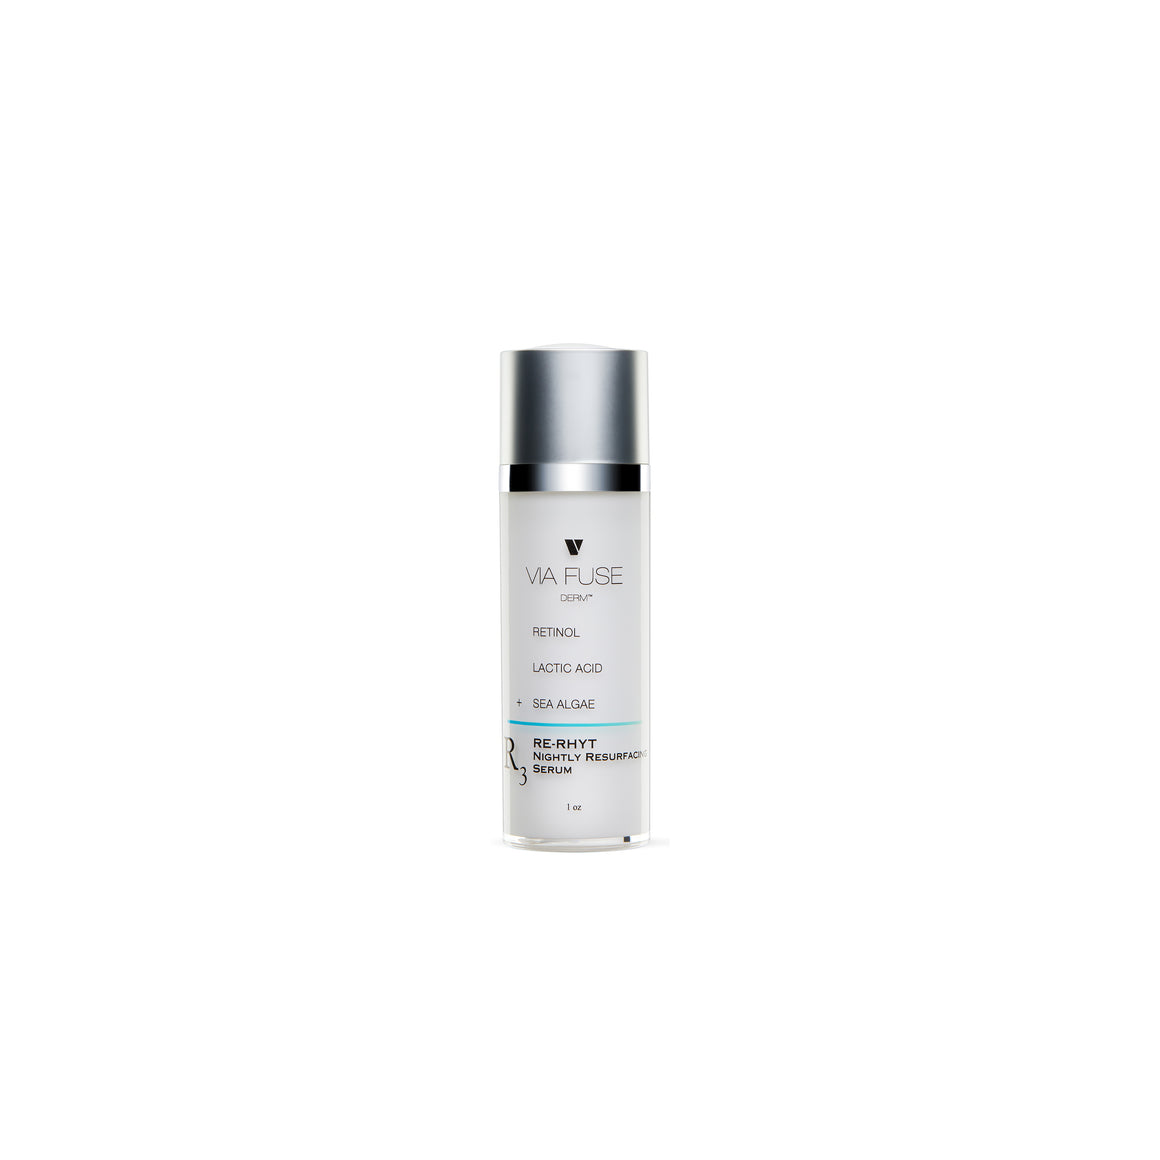 Re-Rhyt Nightly Resurfacing Serum